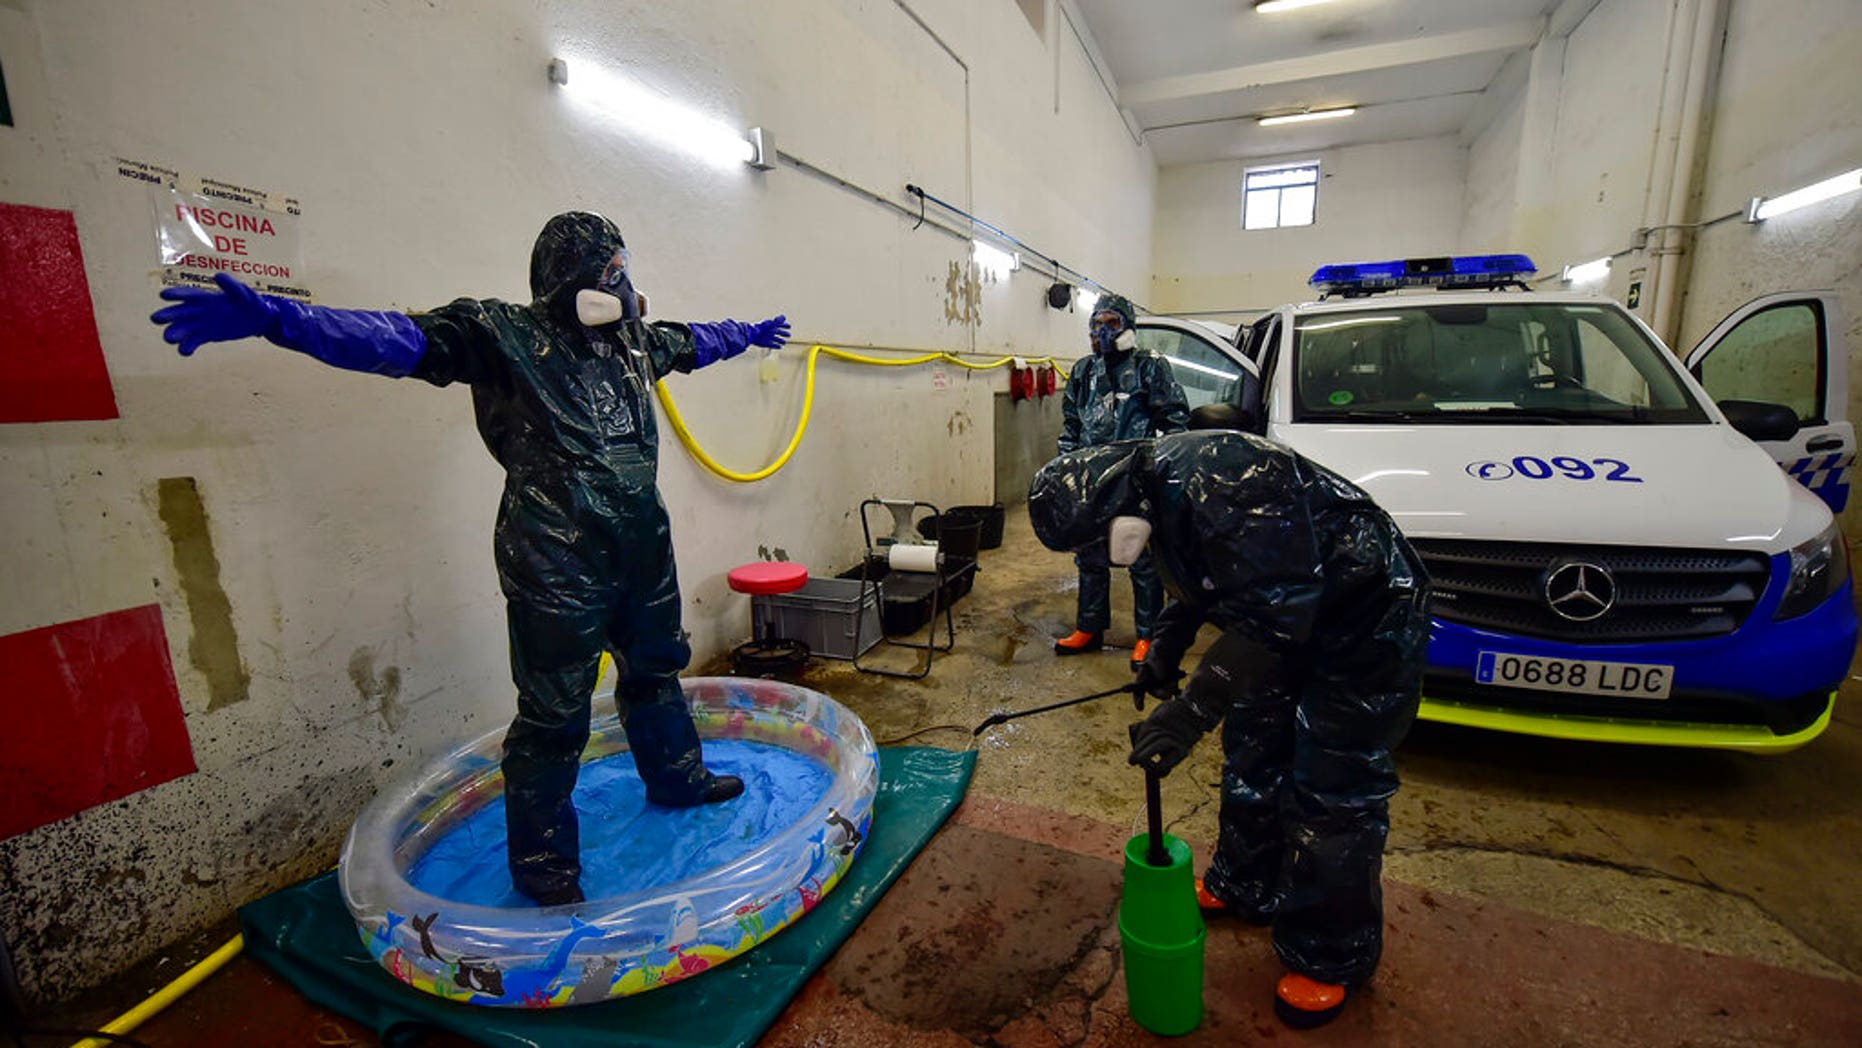 Volunteer workers of Search and Rescue (SAR) with special equipment, disinfect a volunteer while disinfecting police car at Local Police station to prevent the spread of coronavirus COVID-19, in Pamplona, northern Spain, Sunday, March 22, 2020. (AP Photo/Alvaro Barrientos)